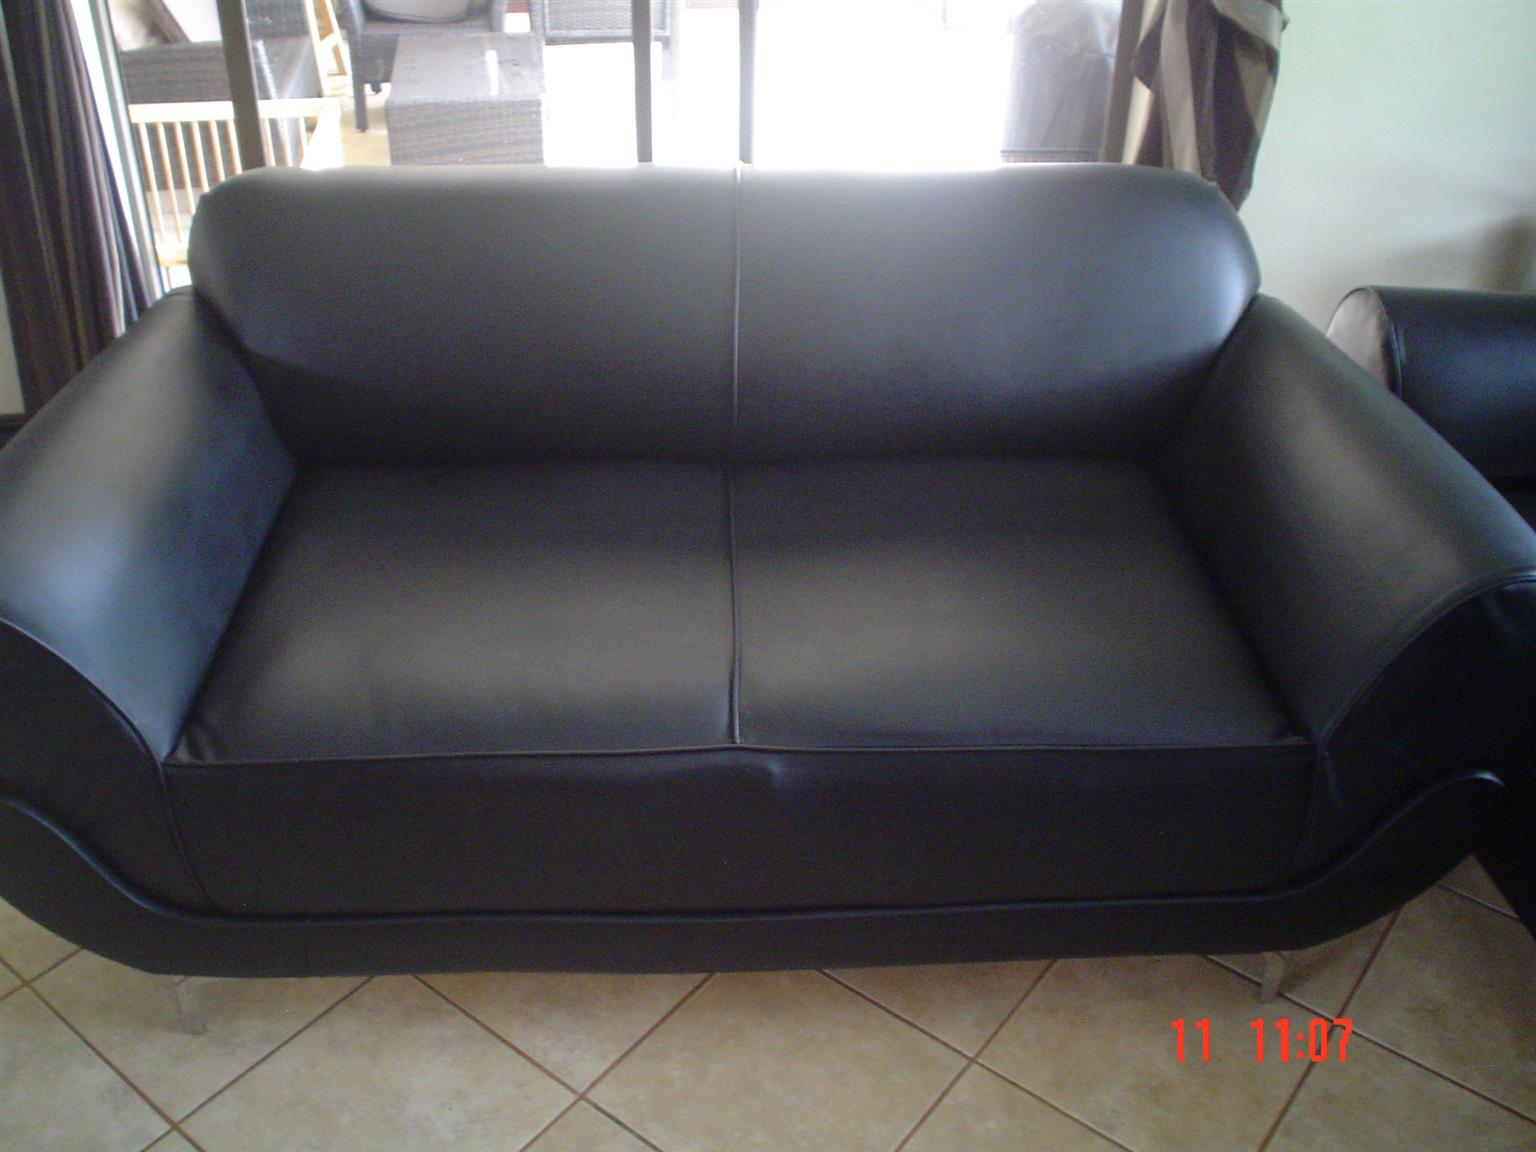 5 Seater lounge set